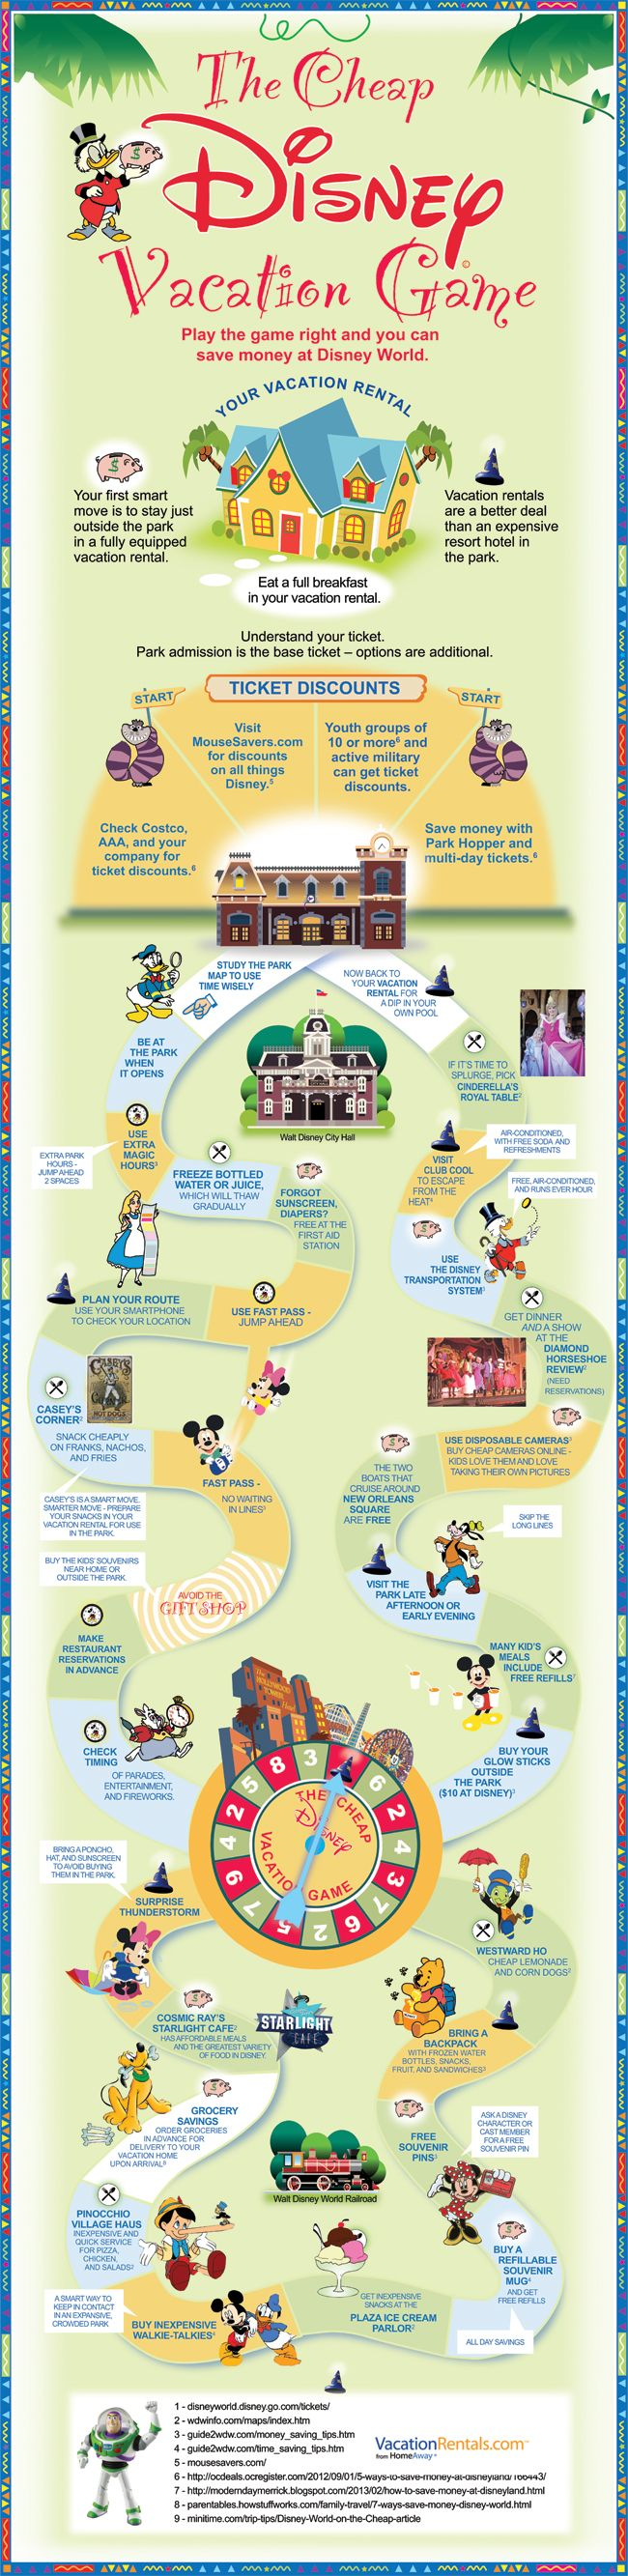 35 Disney Vacation Tips: The Cheap Vacation Guide